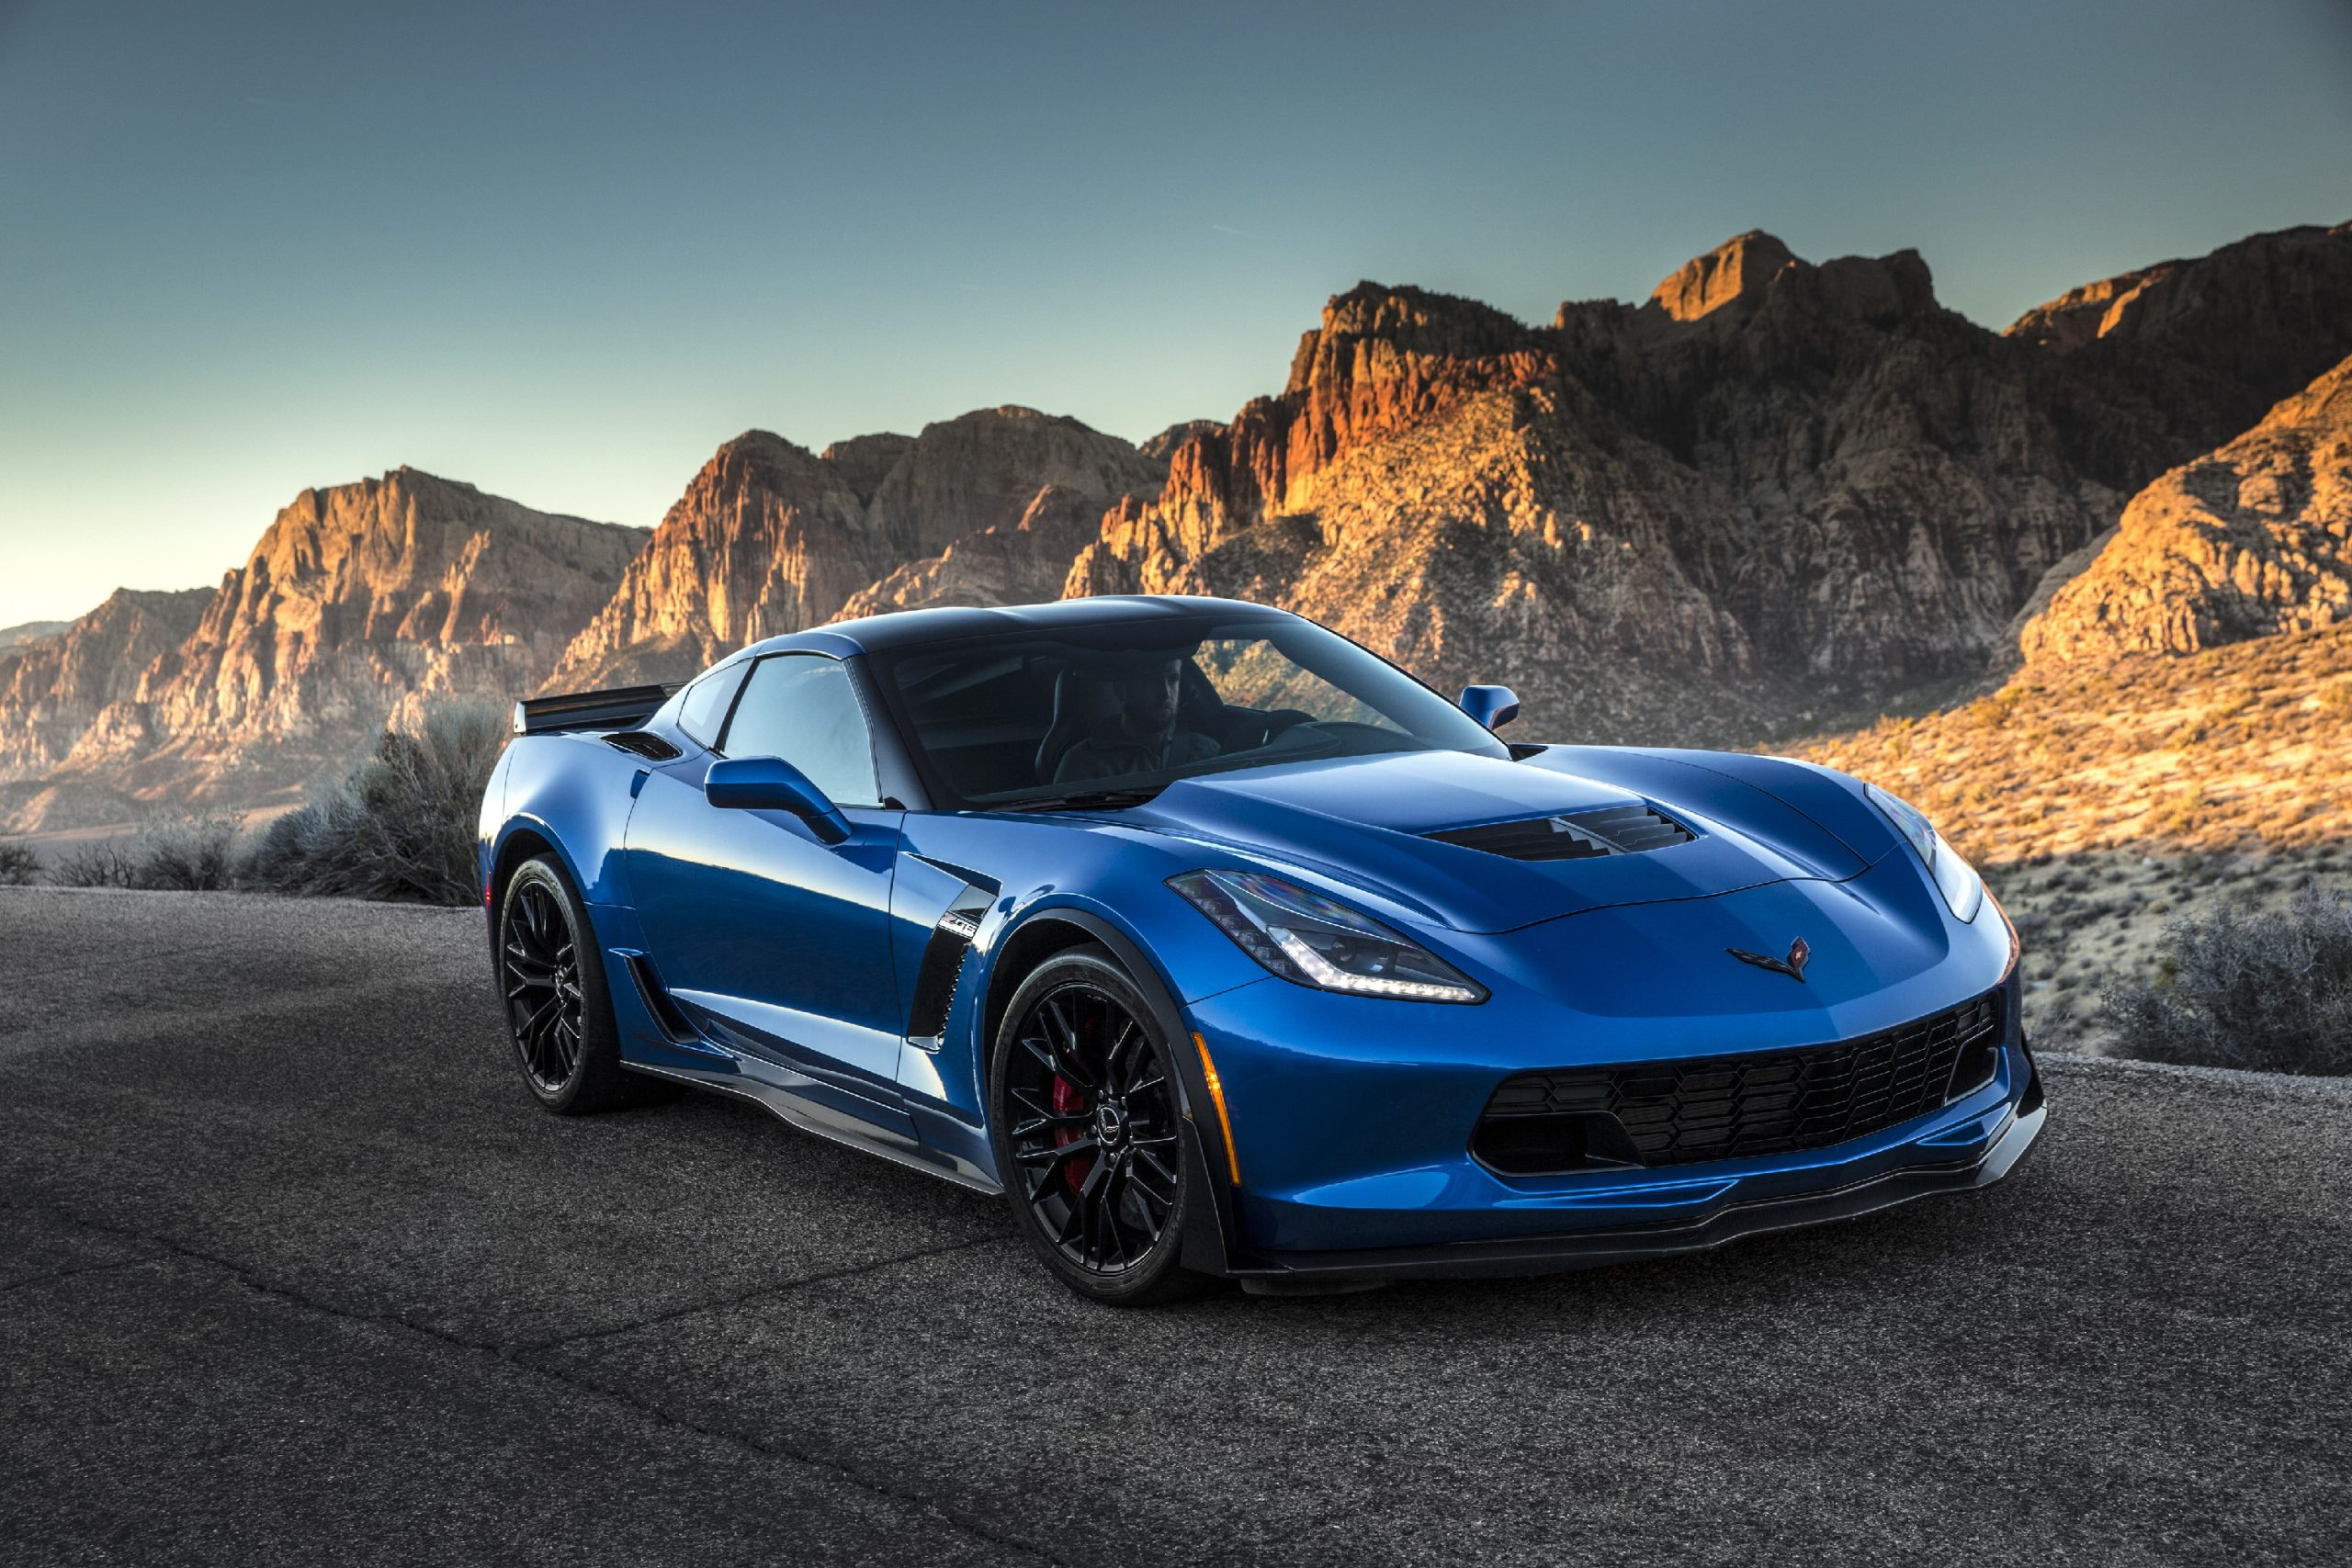 he 650-hp, 2015 Chevrolet Corvette Z06 is one of the most capable vehicles on the market, capable of accelerating from 0 to 60 mph in only 2.95 seconds, achieving 1.2 g in cornering acceleration, and braking from 60-0 mph in just 99.6 feet.